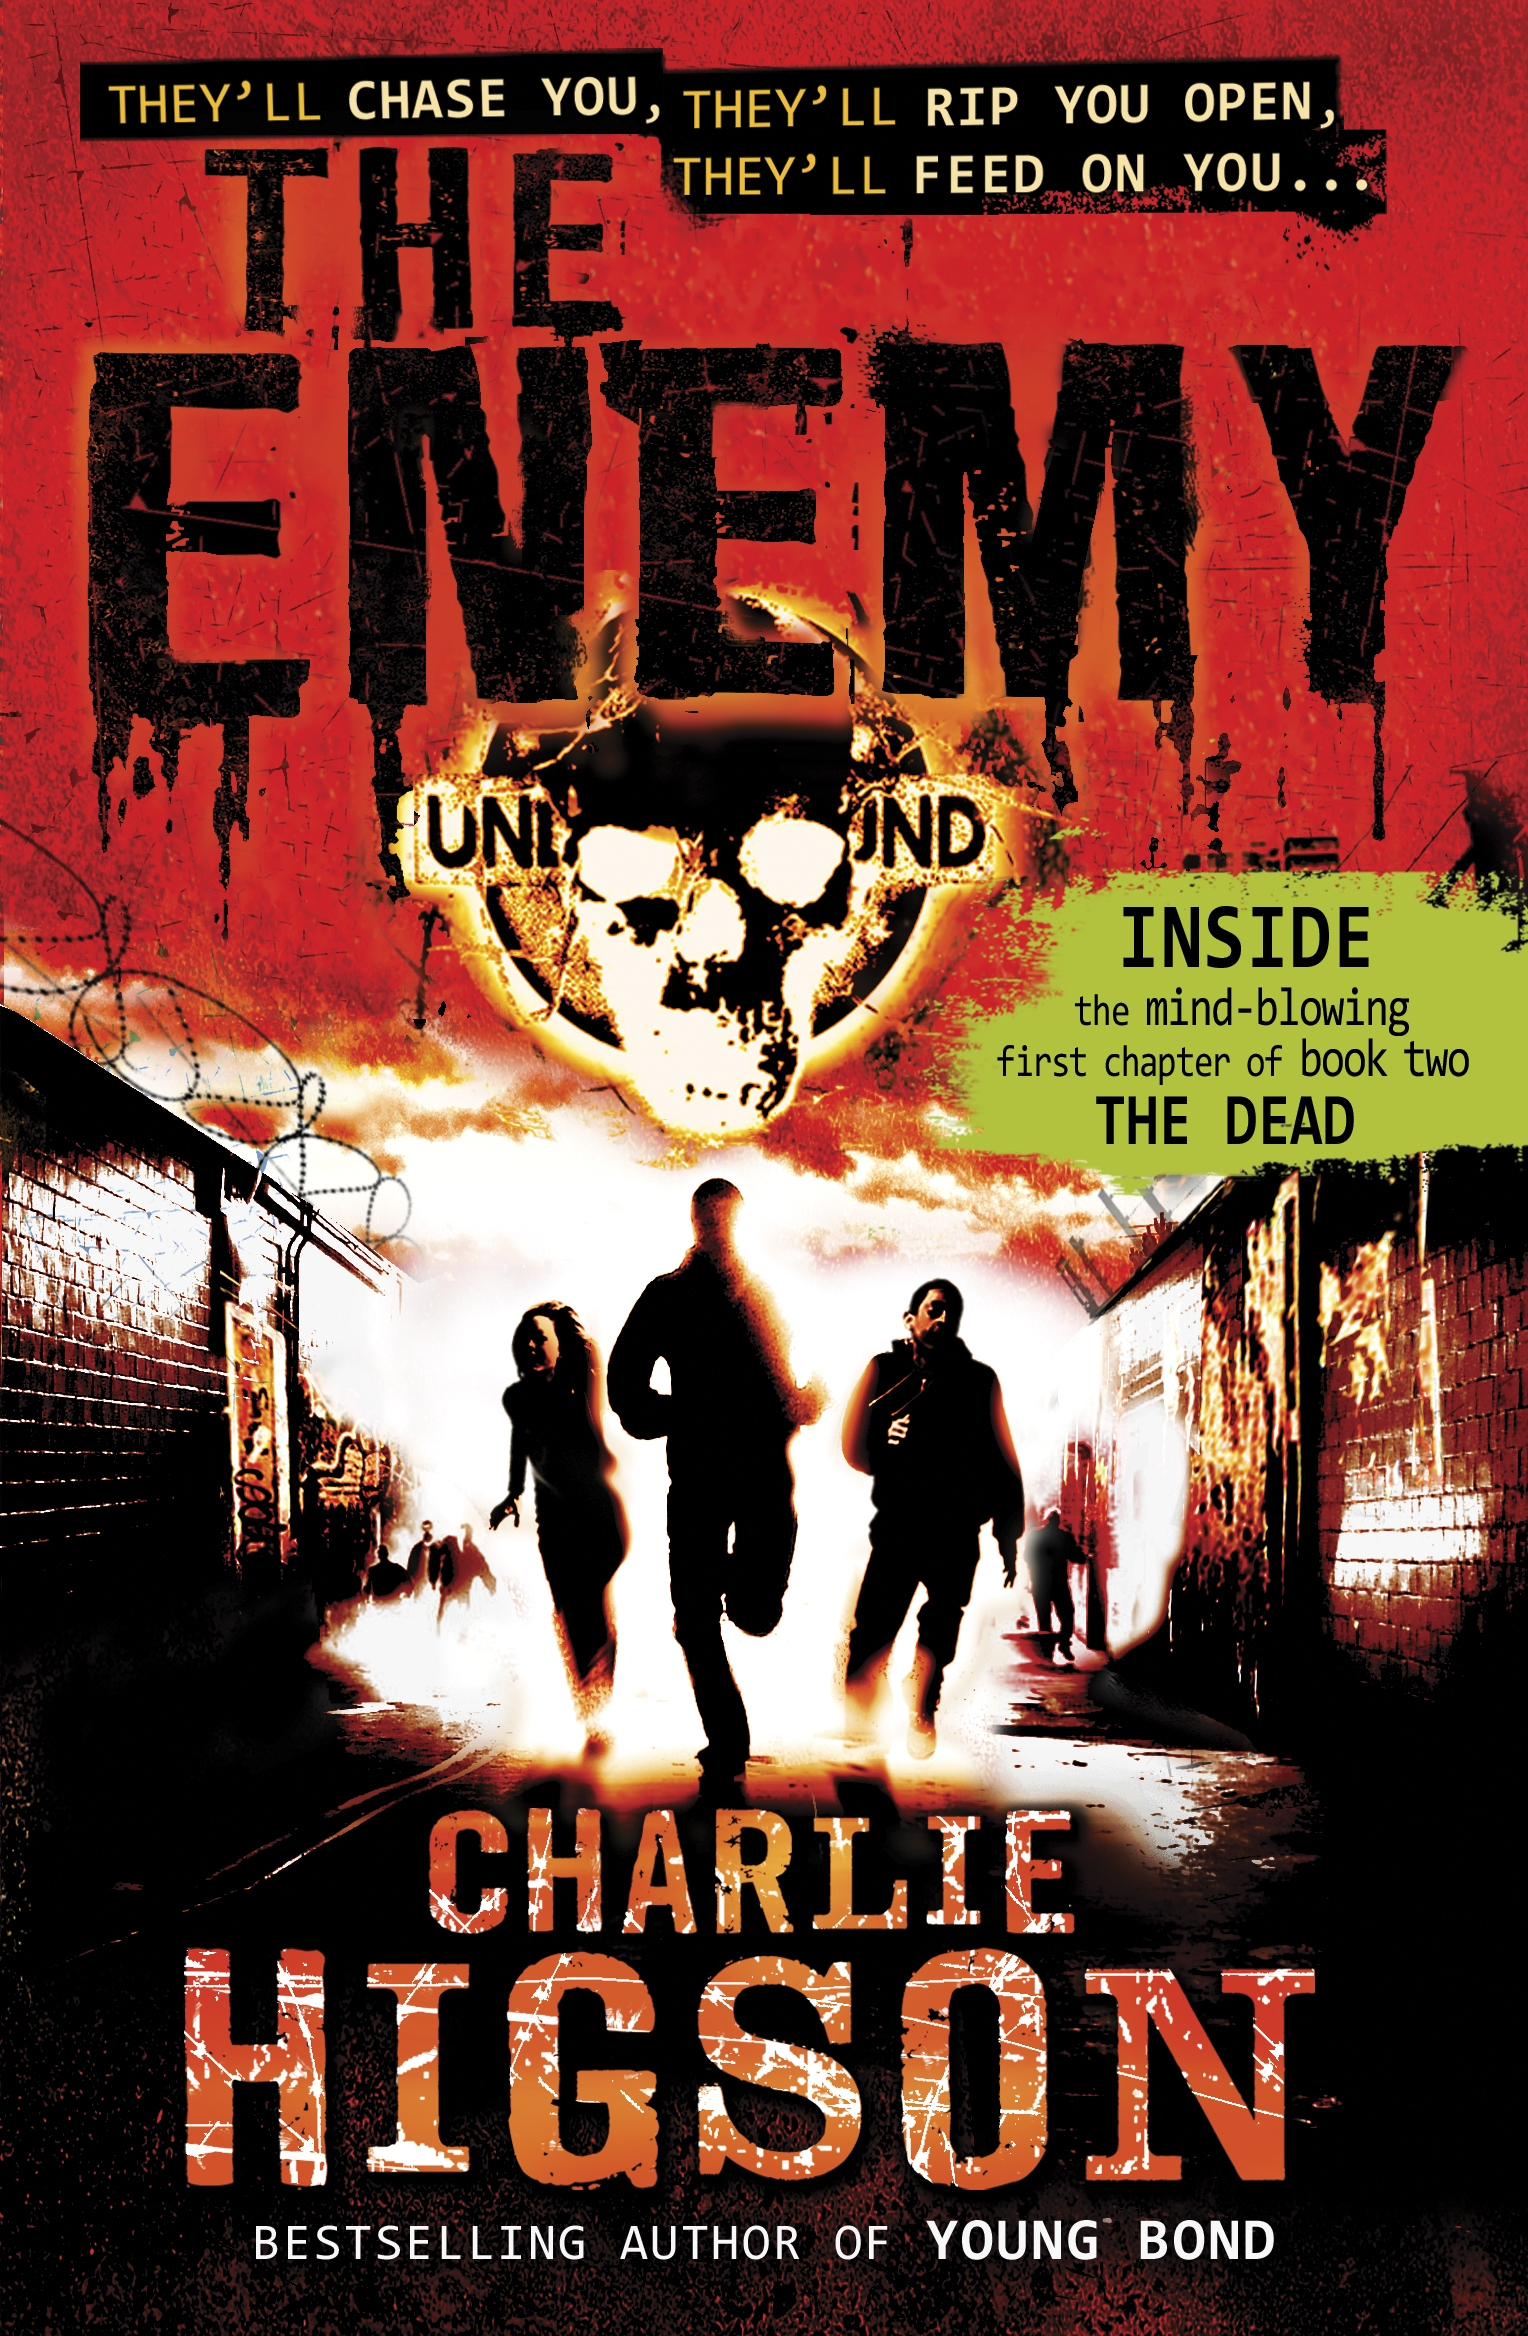 Book Cover Series Questions : Charlie higson author horrorpedia